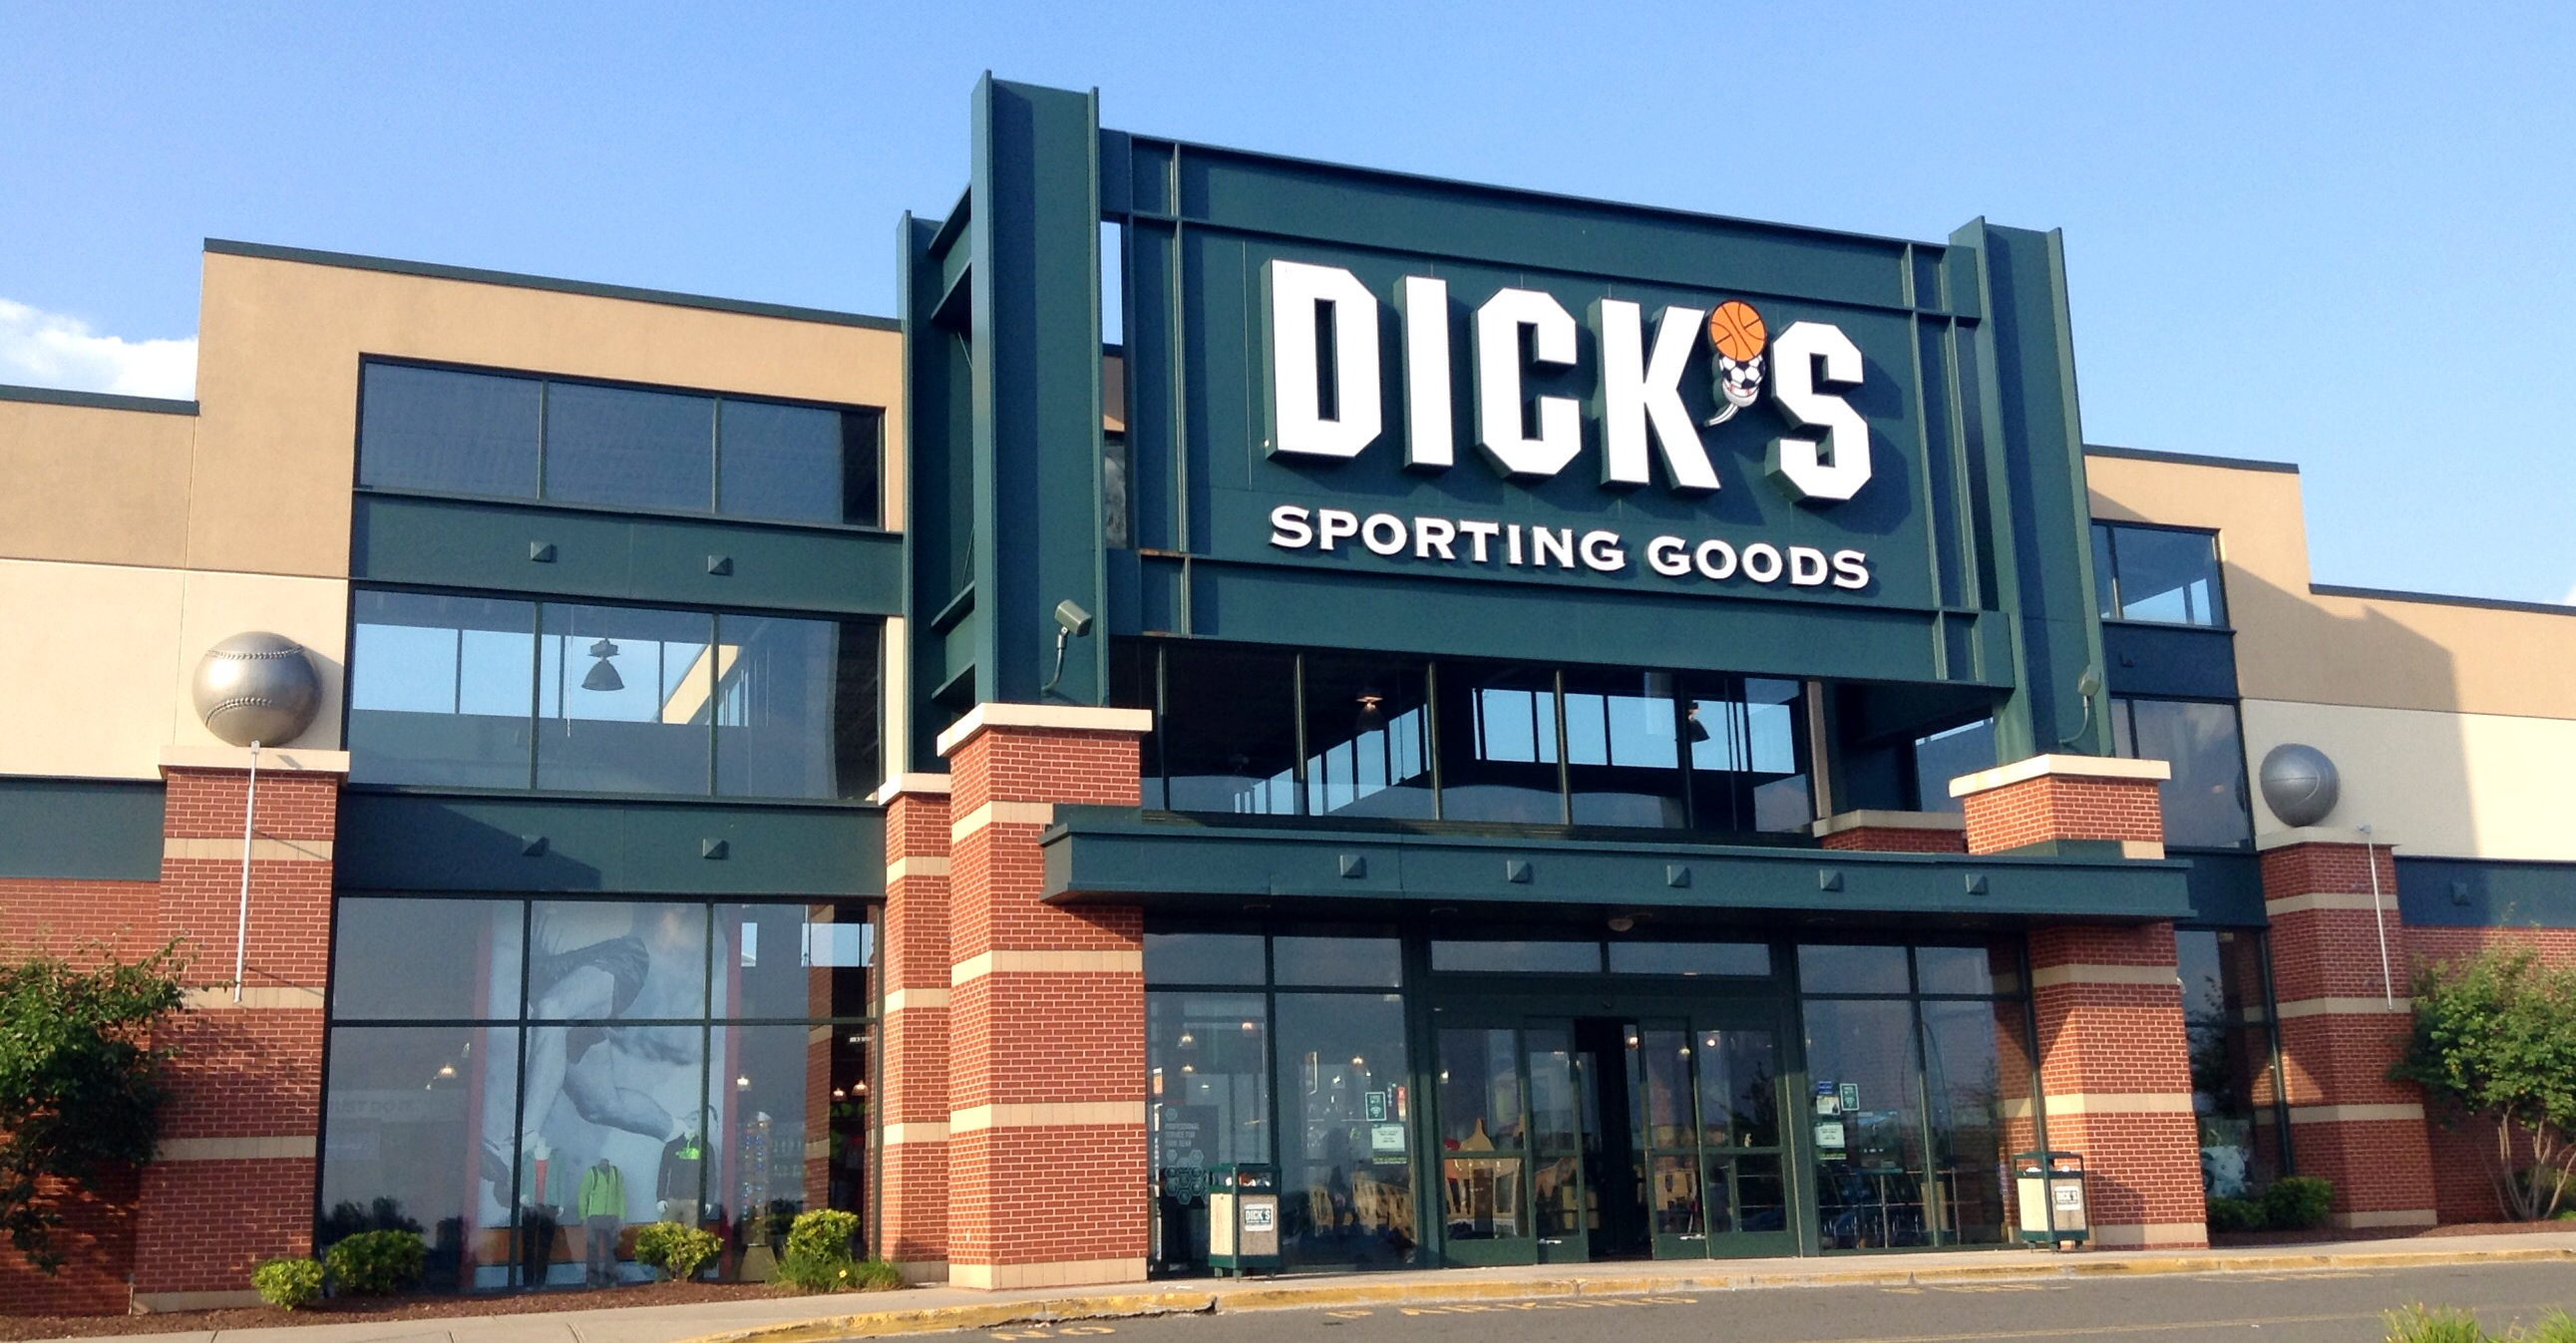 Dick s sporting goods corporate contact